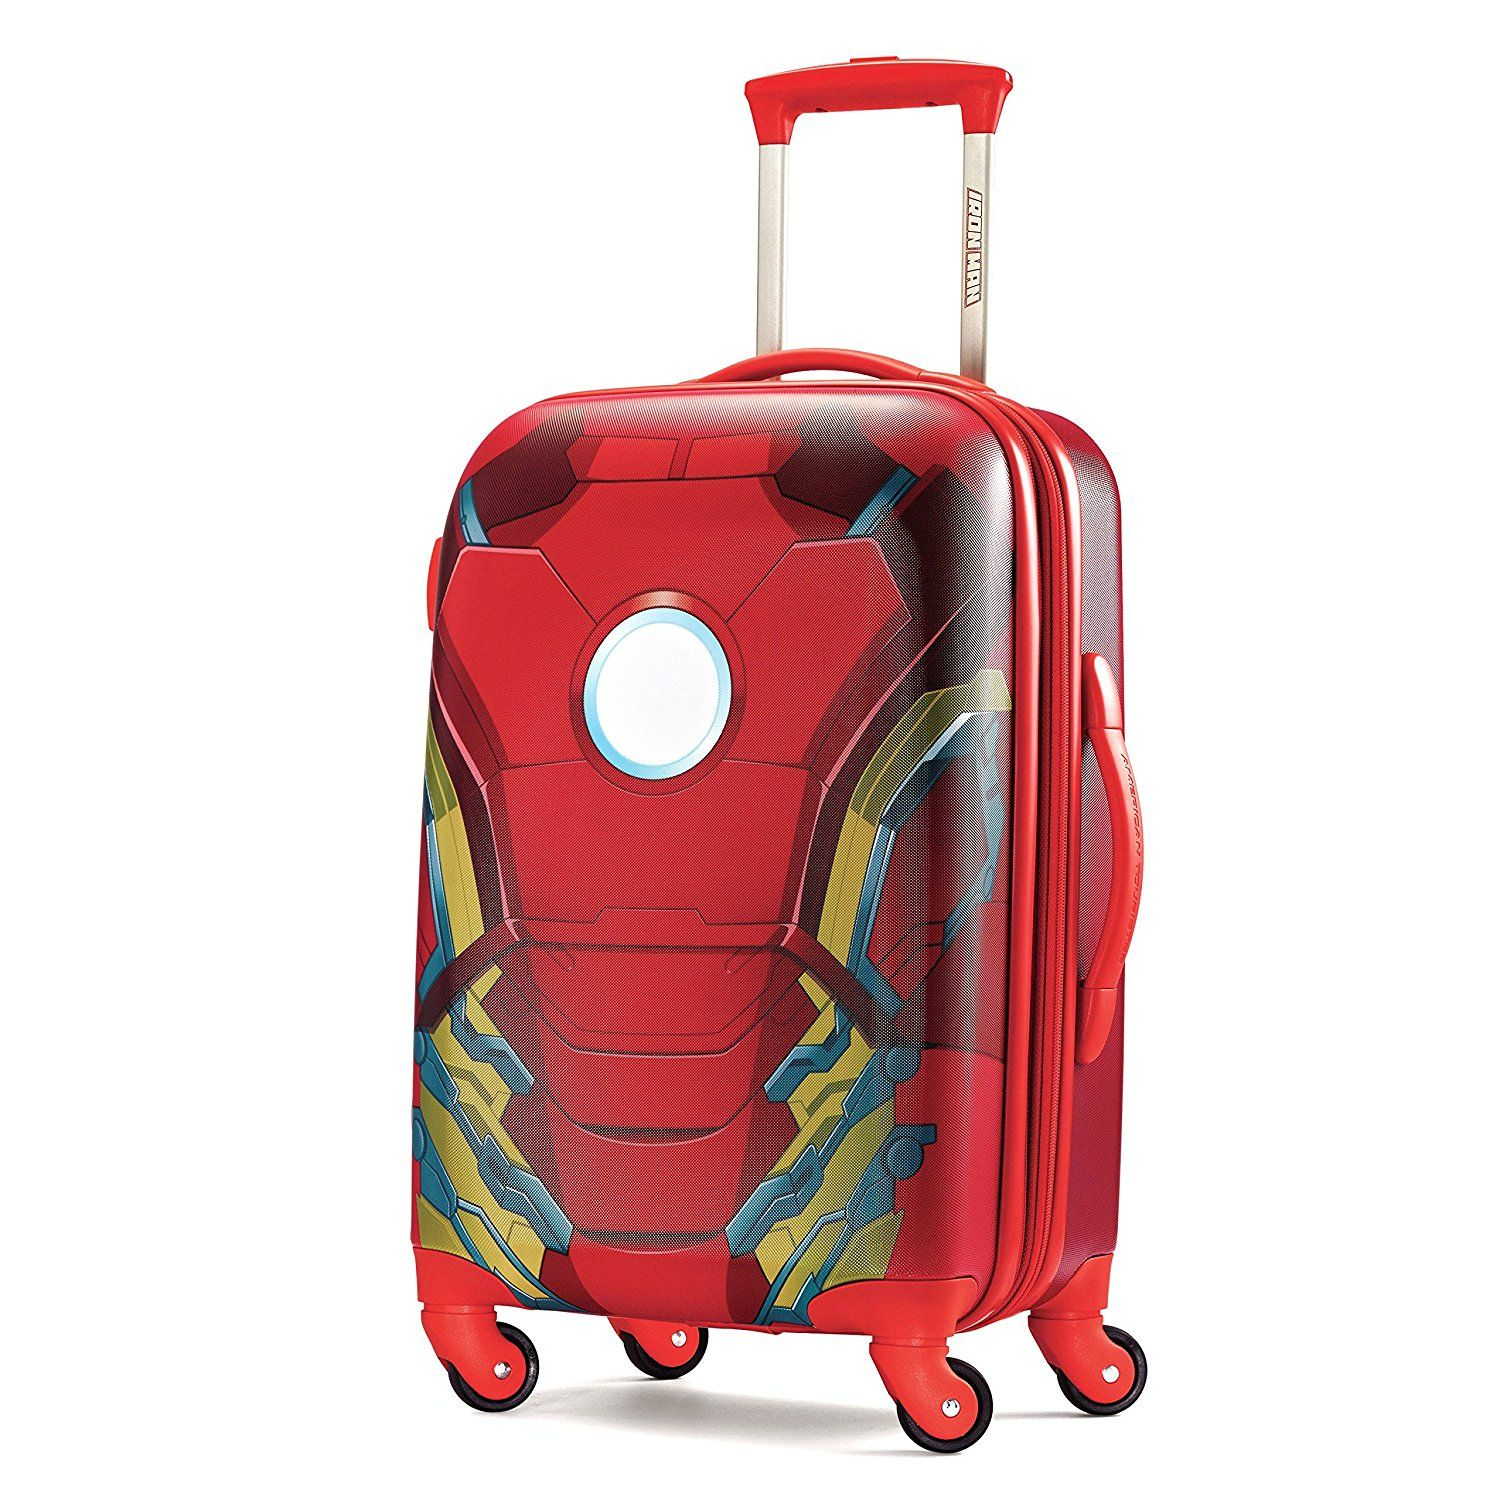 American Tourister Marvel 21 Inch Spinner Carry On Luggage